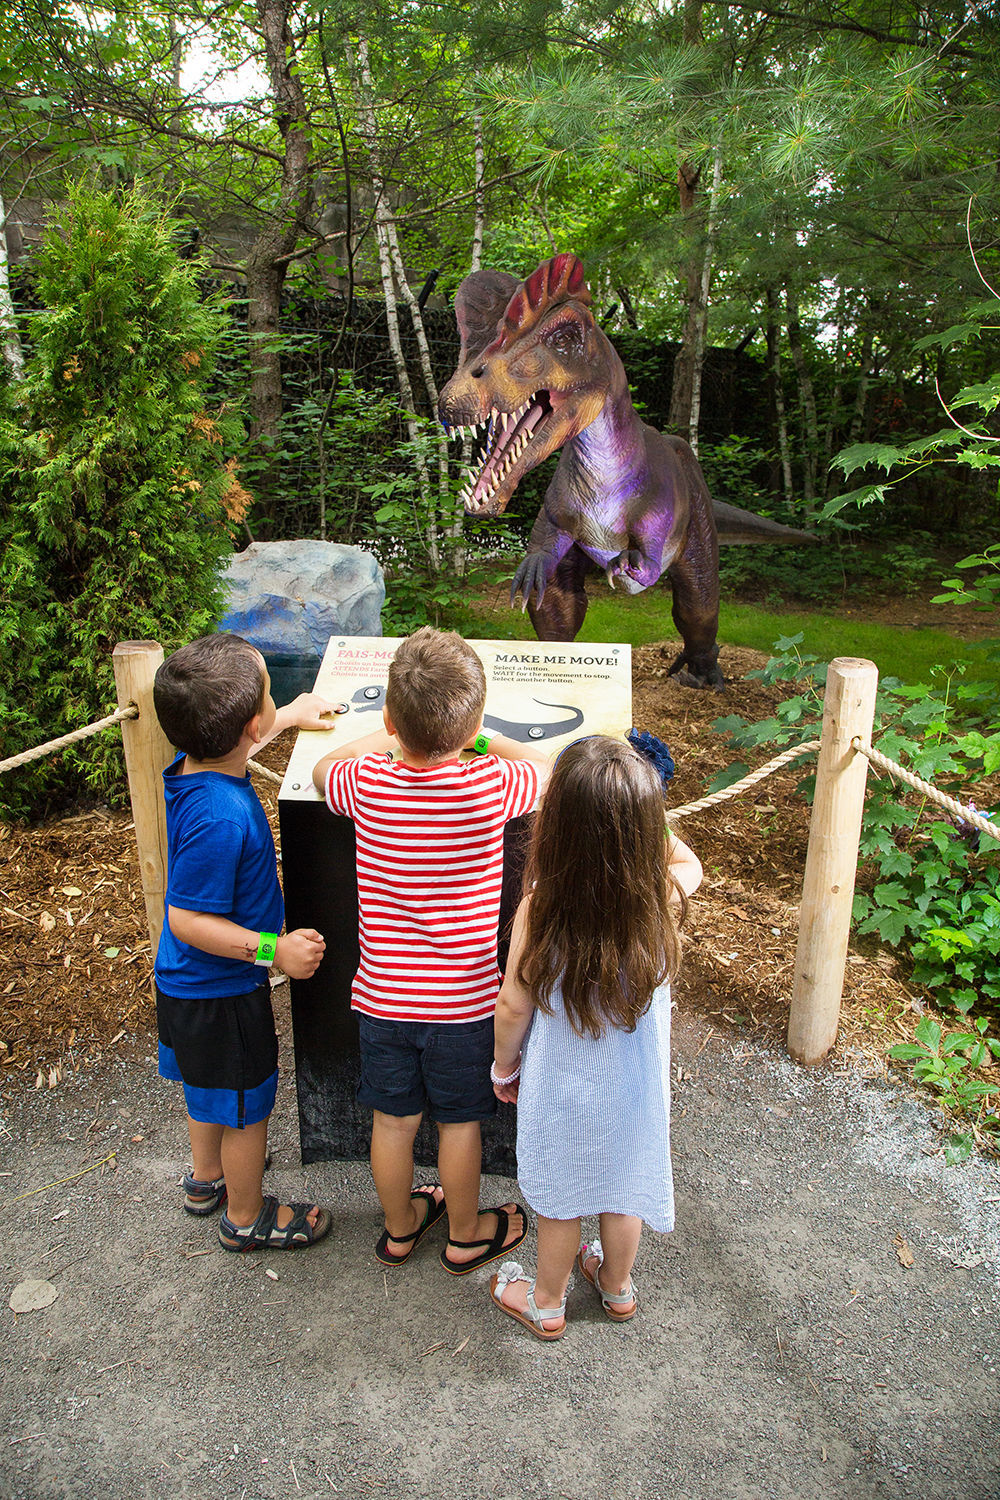 Lions, and even dinosaurs, roar within the maze of wild animals at the Zoo de Granby